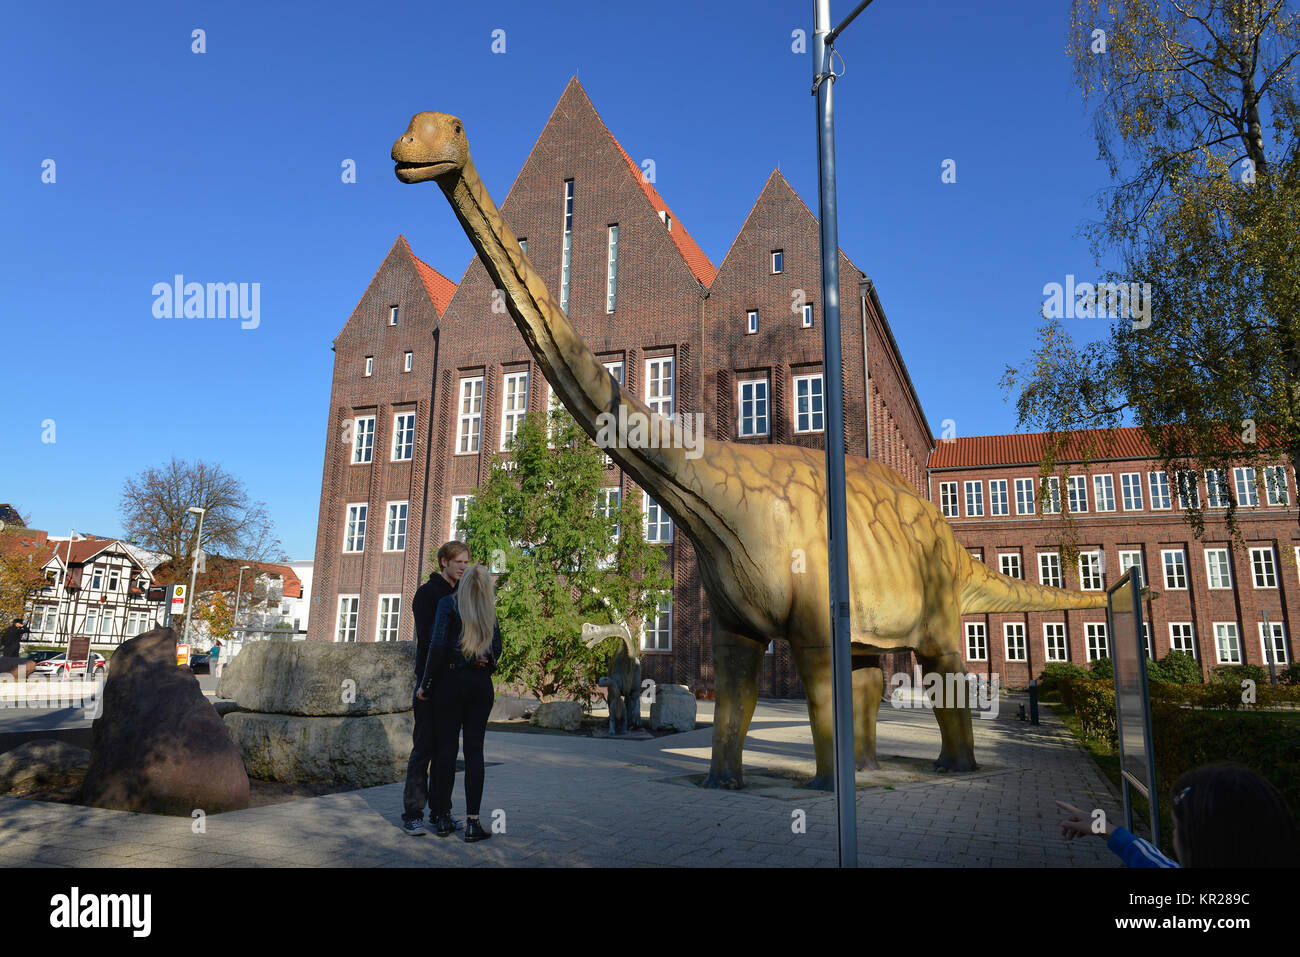 Natural-historical museum, Pockelstrasse, Brunswick, Lower Saxony, Germany, Naturhistorisches Museum, Braunschweig, - Stock Image